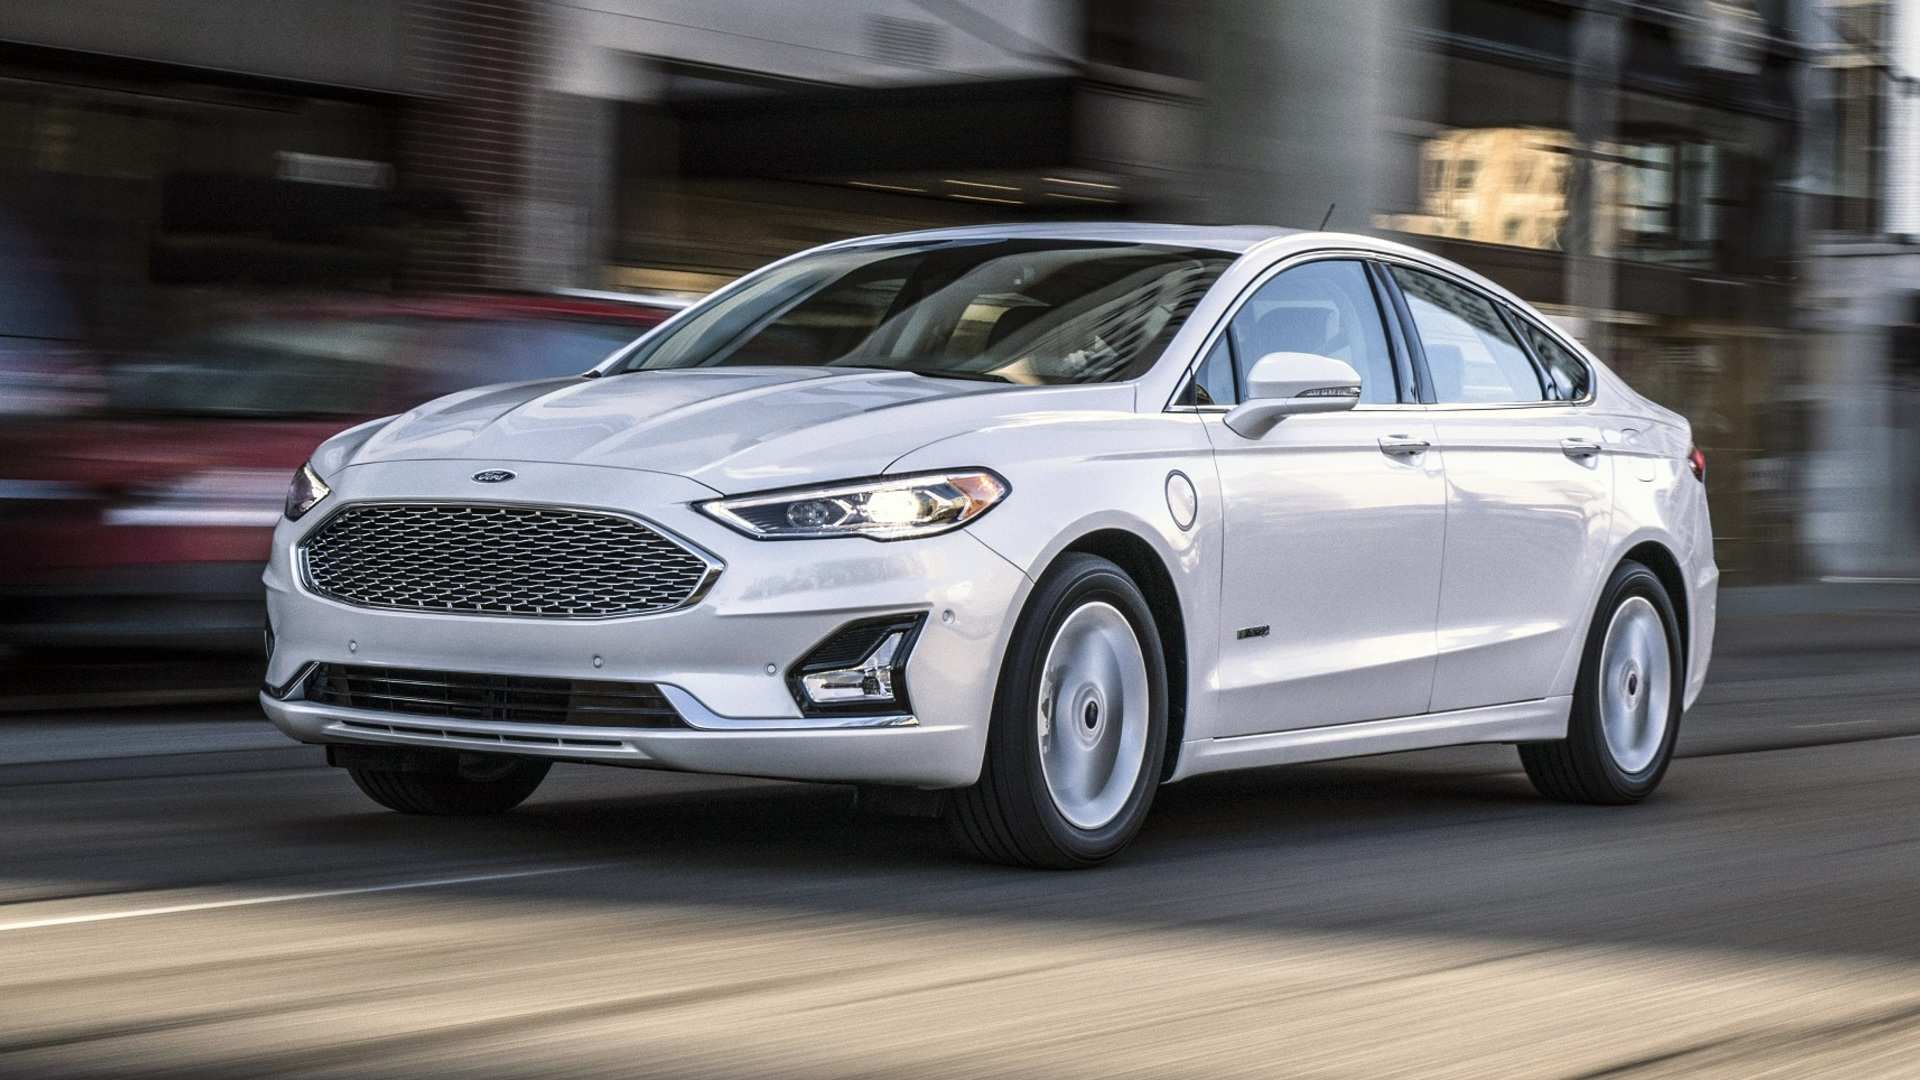 70 All New 2020 Ford Fusion Energi Release Date And Concept